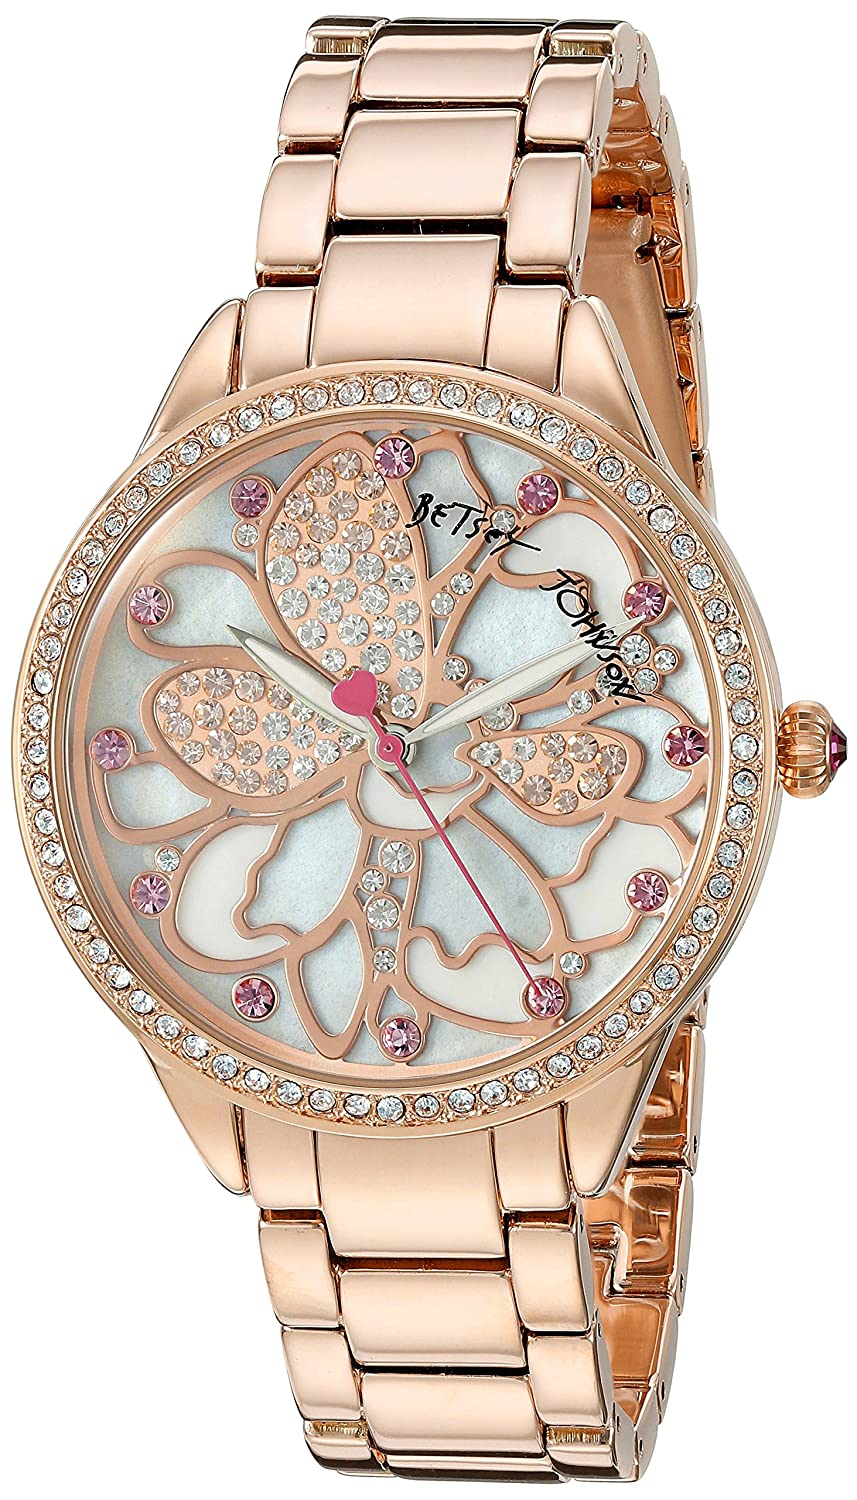 Betsey Johnson Women's BJ00572-01 Analog Display Quartz Rose Gold Watch